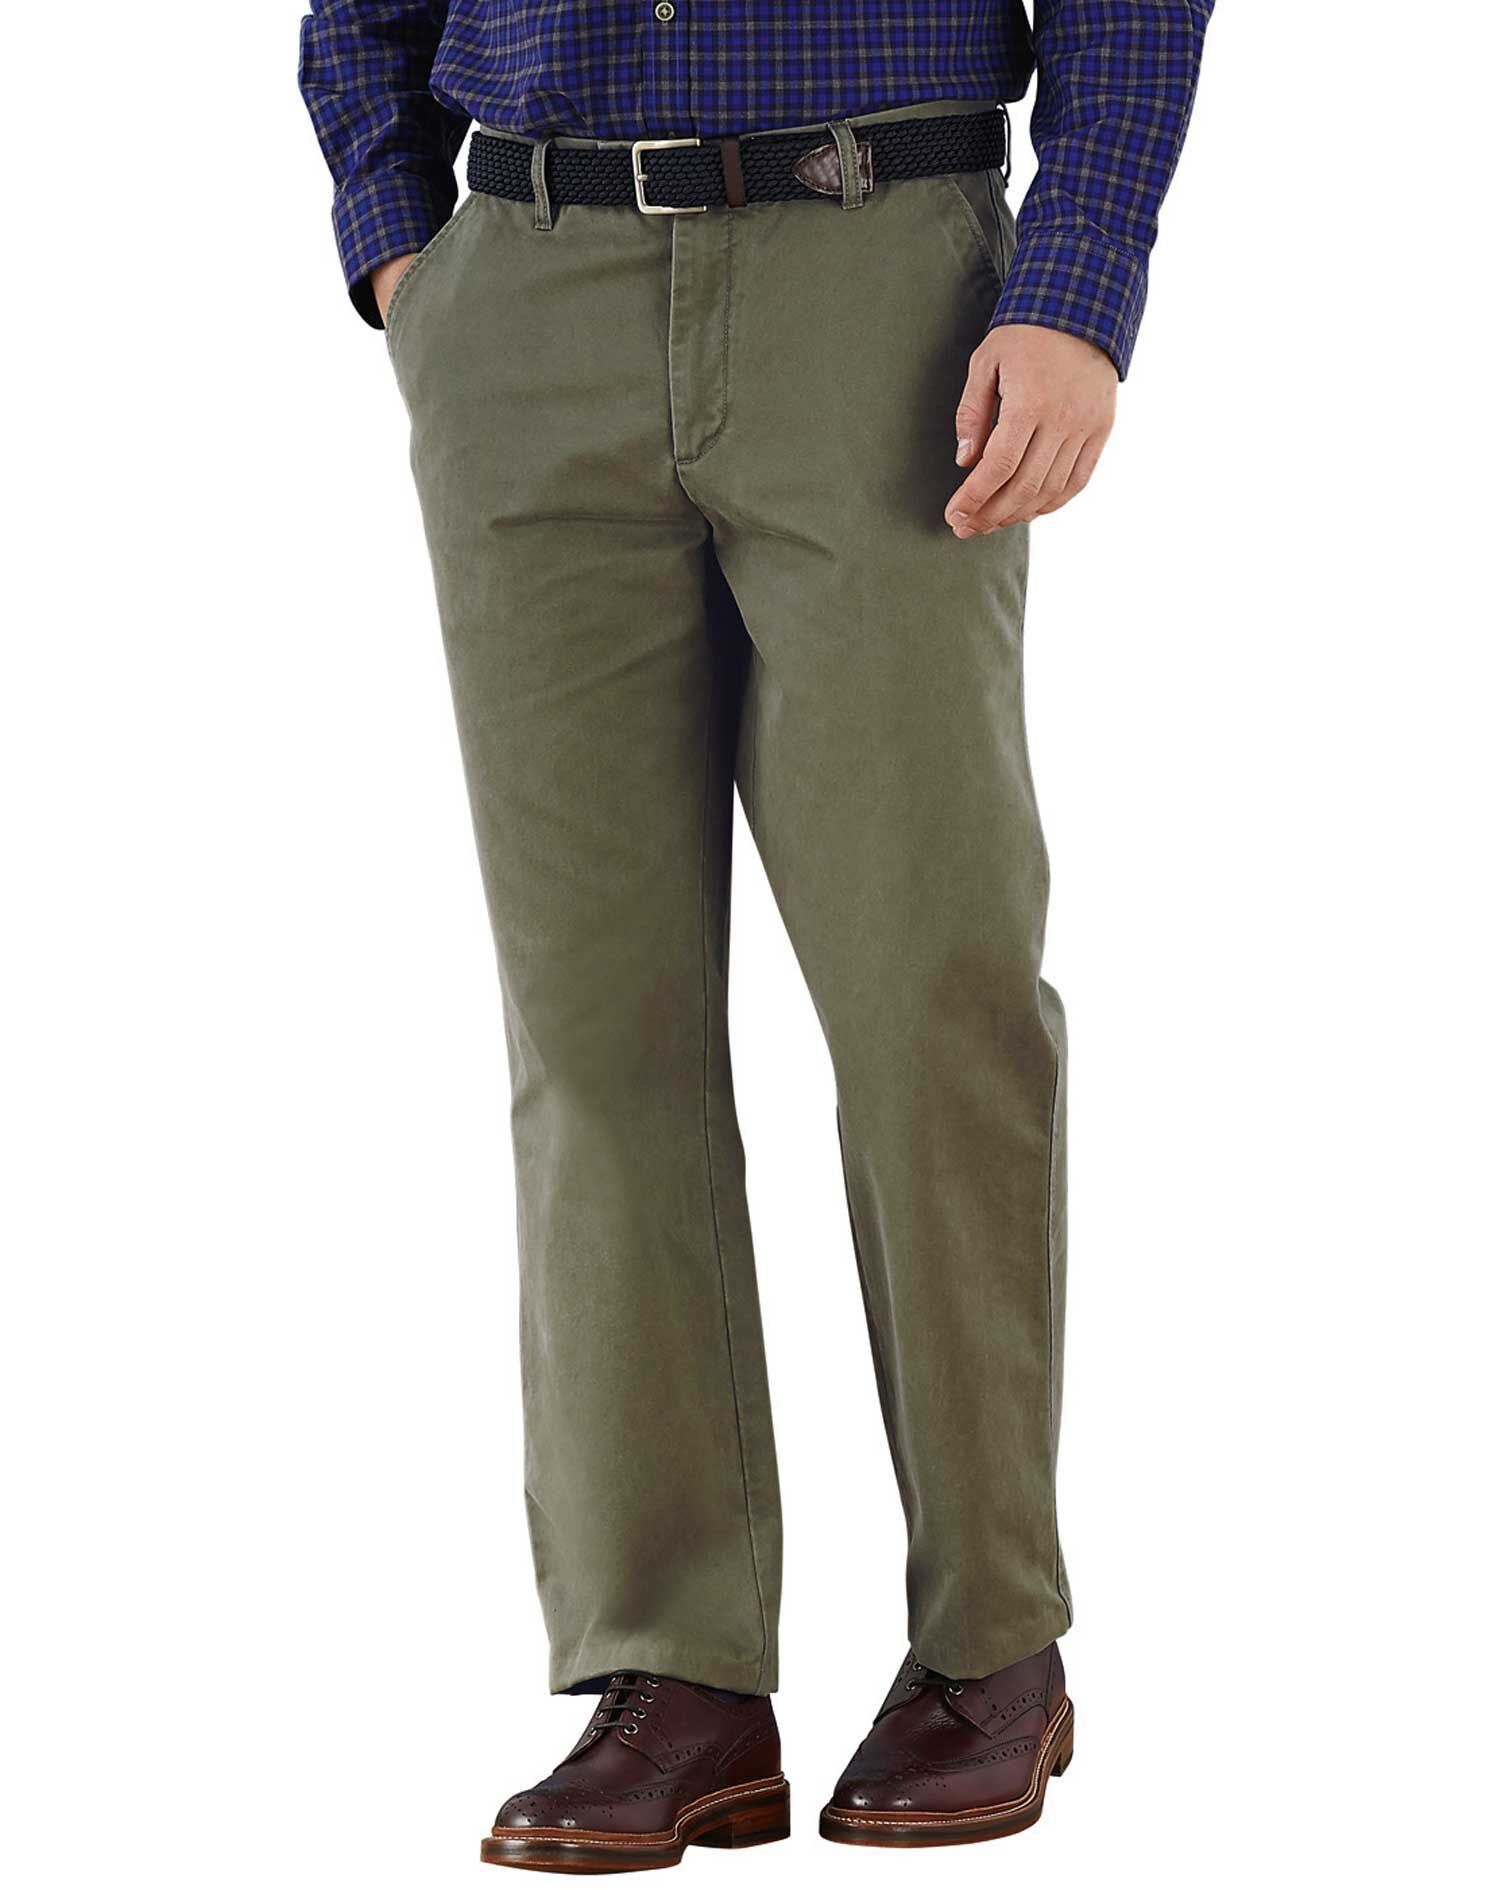 Olive Classic Fit Flat Front Cotton Chino Trousers Size W34 L29 by Charles Tyrwhitt